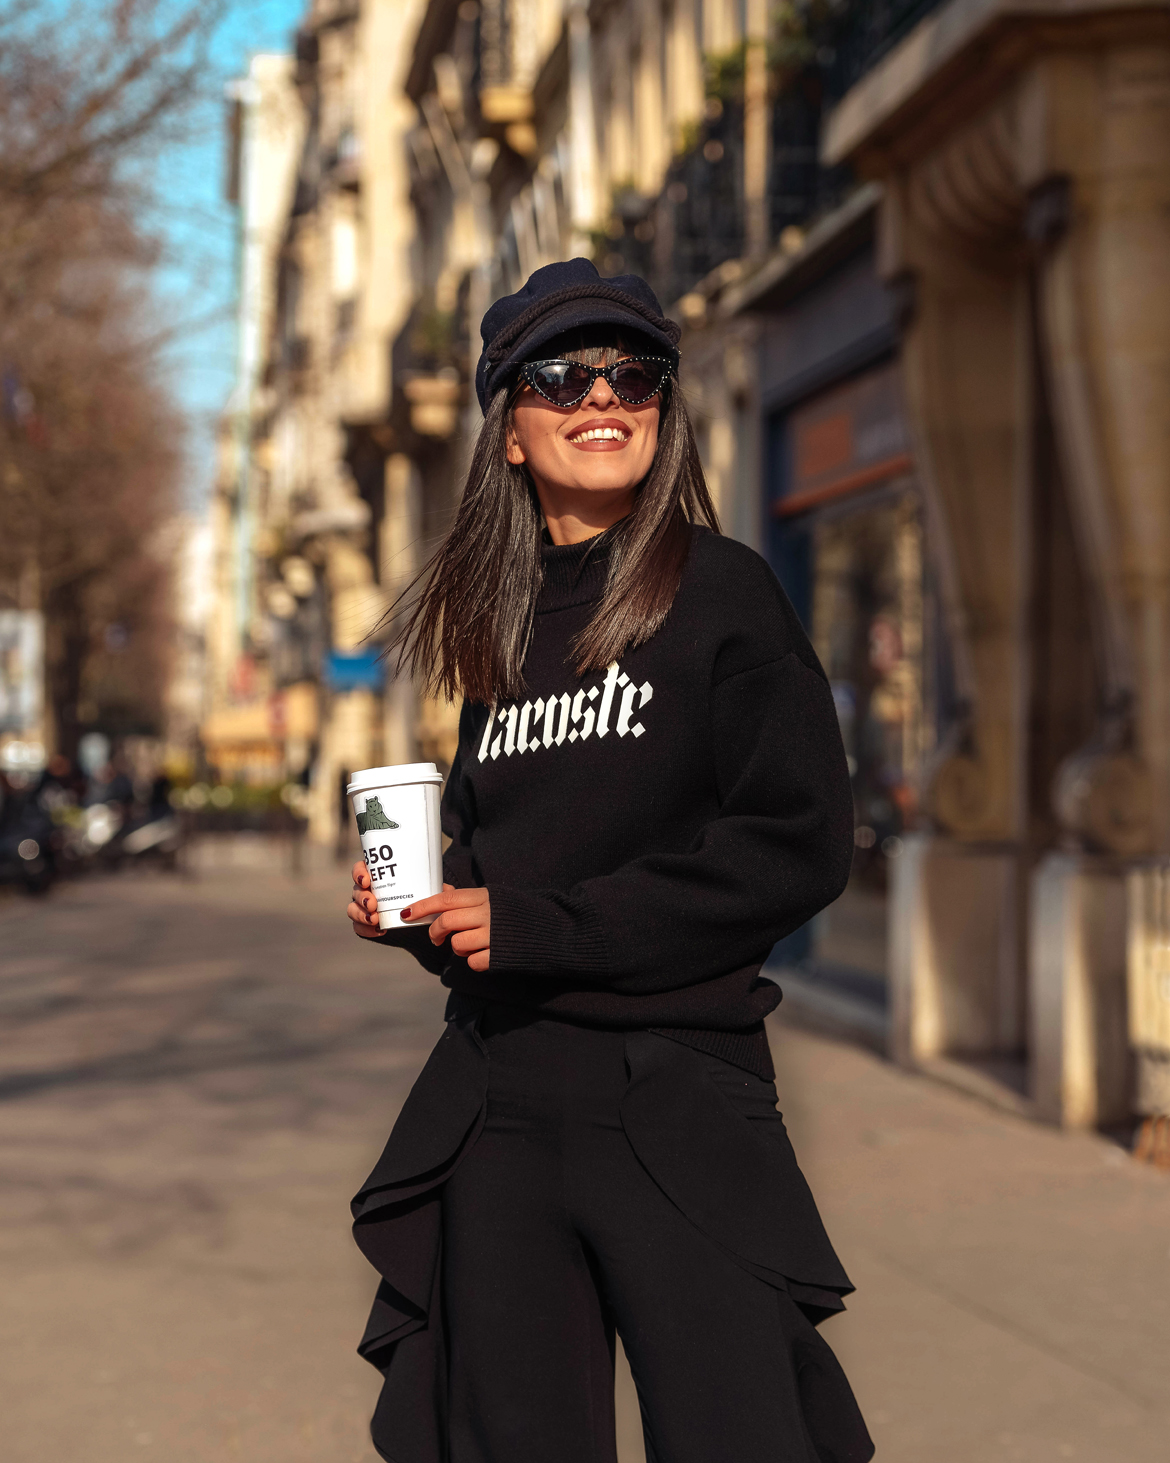 Laura Comolli Street Style Fashion Week di Parigi e Milano 2018